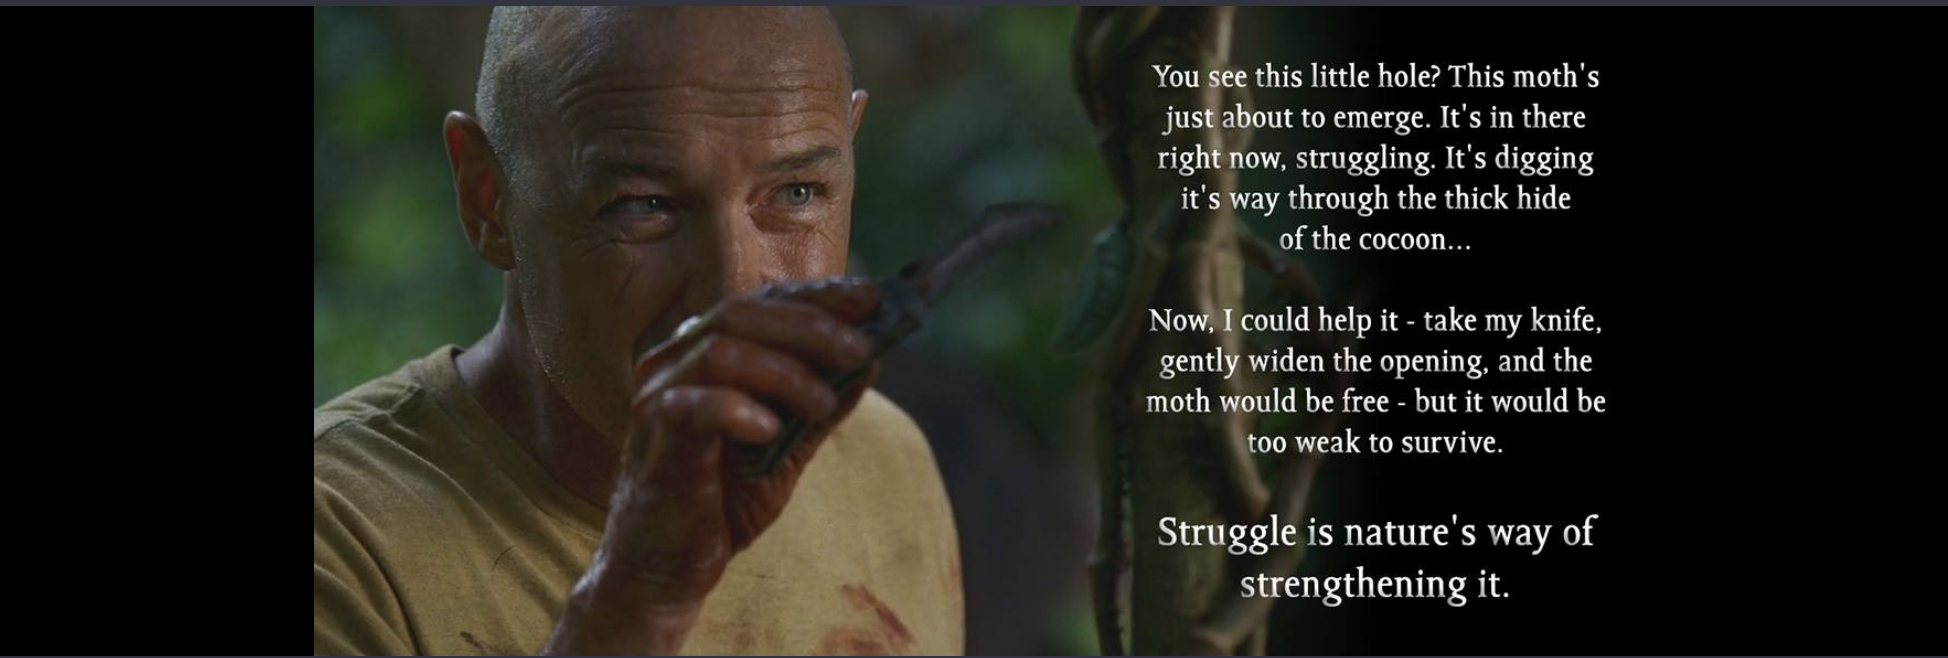 [Image] Struggle is nature's way of strengthening